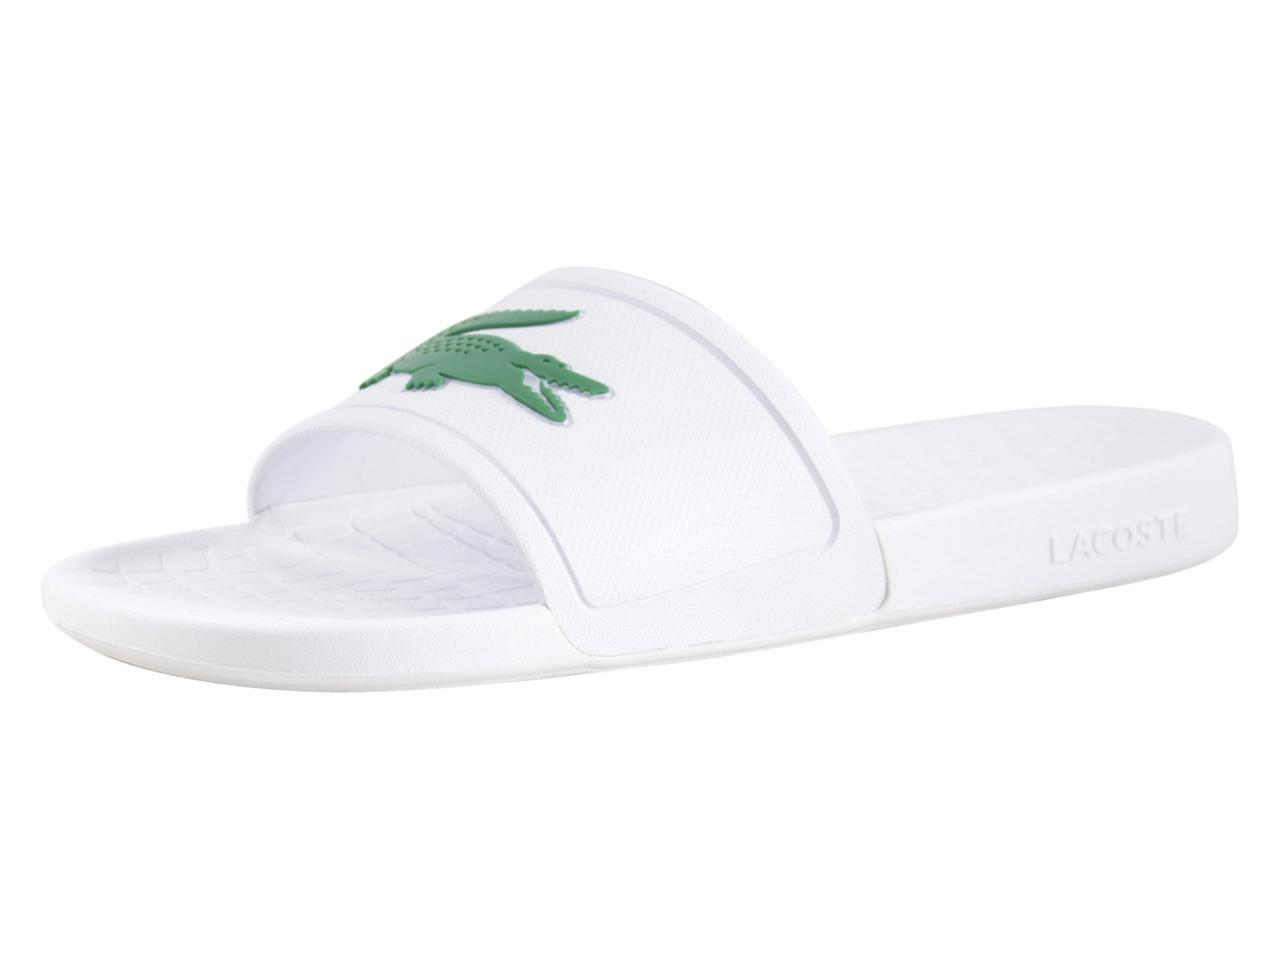 d8eb193fb07b Lacoste Men s Fraisier-318 White Green Slides Sandals Shoes